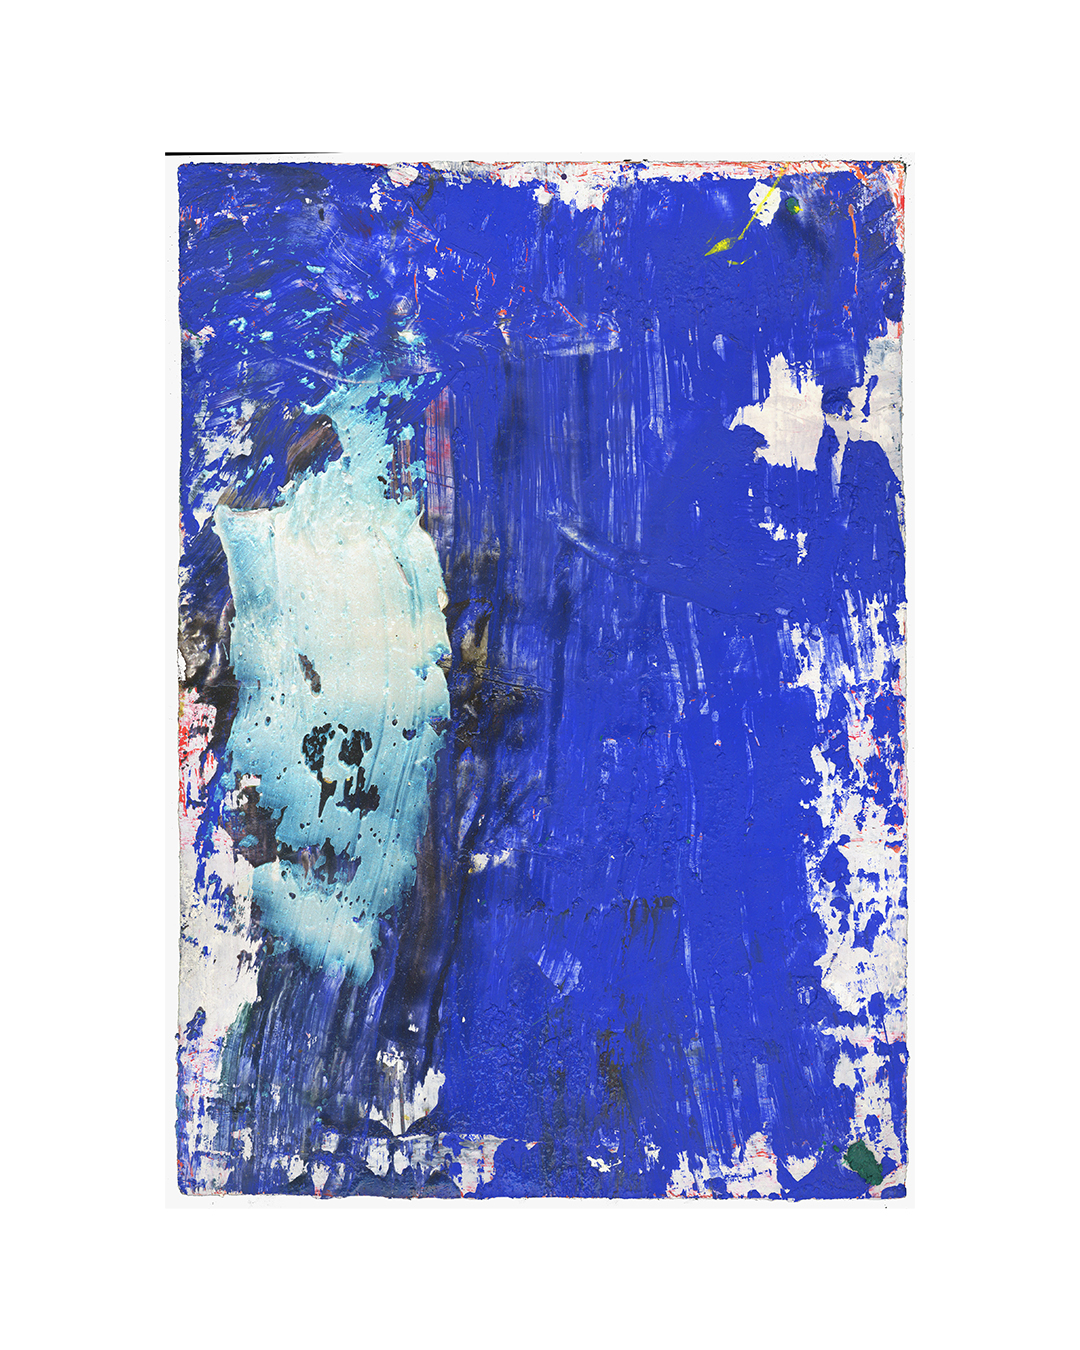 Piet Dieleman, untitled, 2020, painting, tempera, acrylic paint, laser wood print on paper, 385 x 275 mm, €930